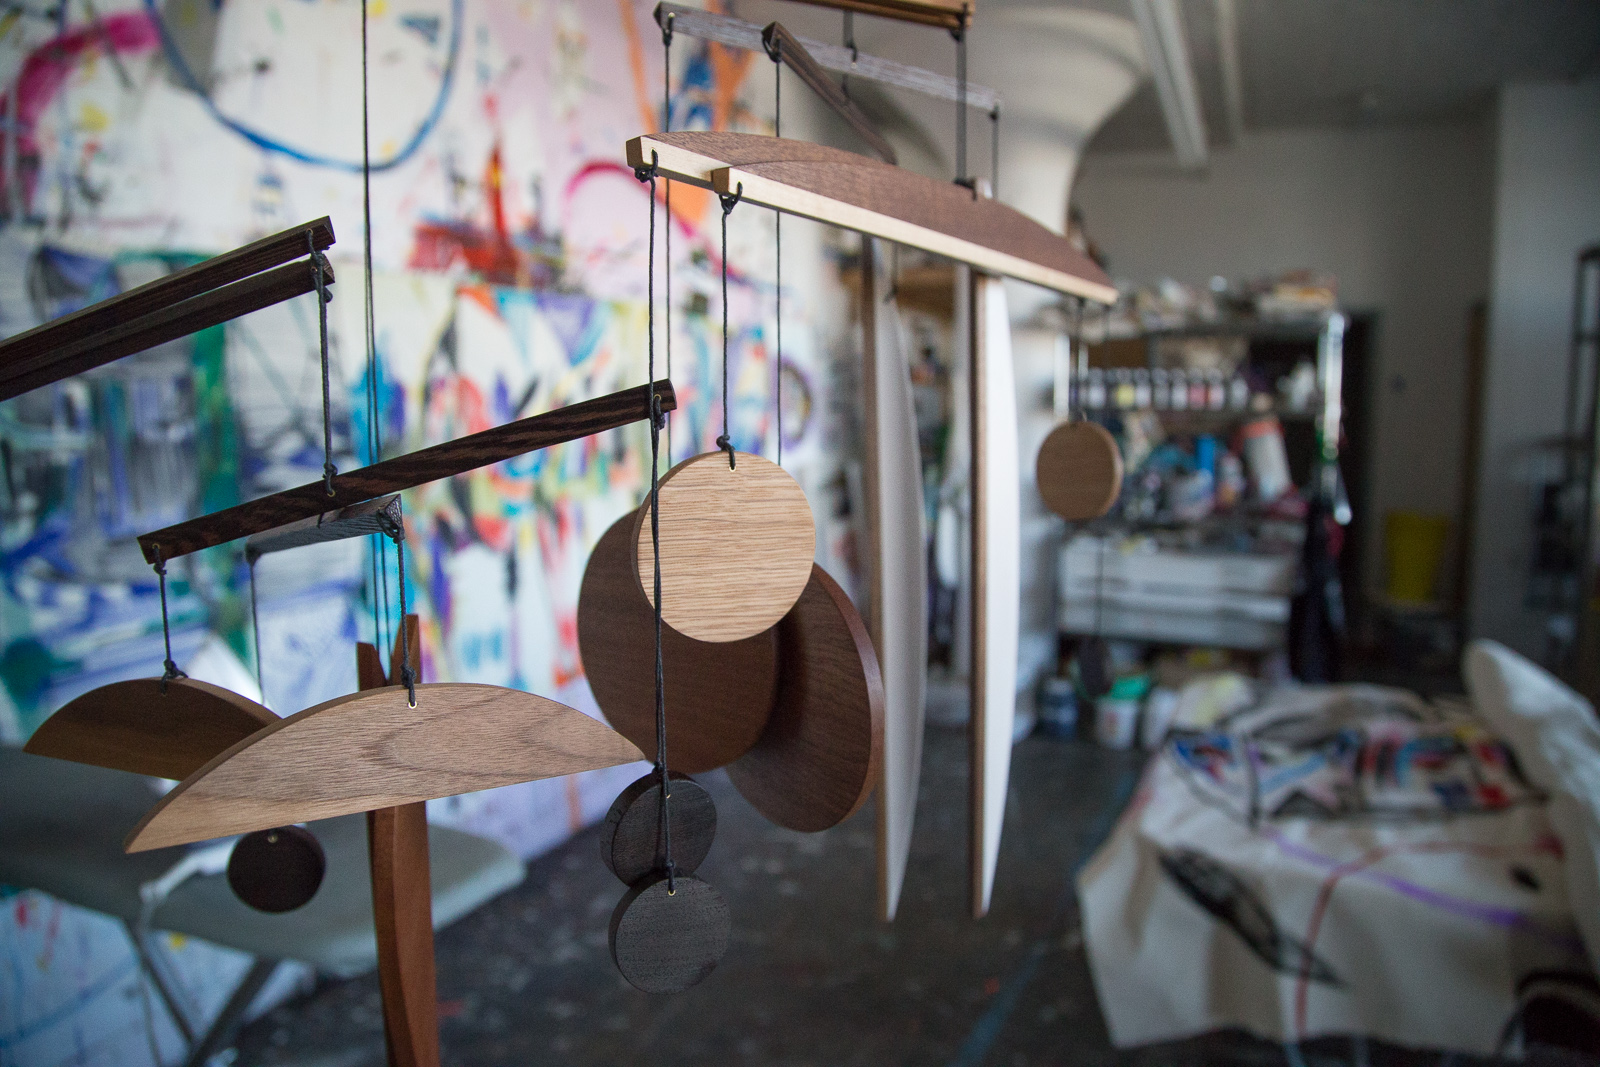 Mobiles hang in the Fort Makers Studio